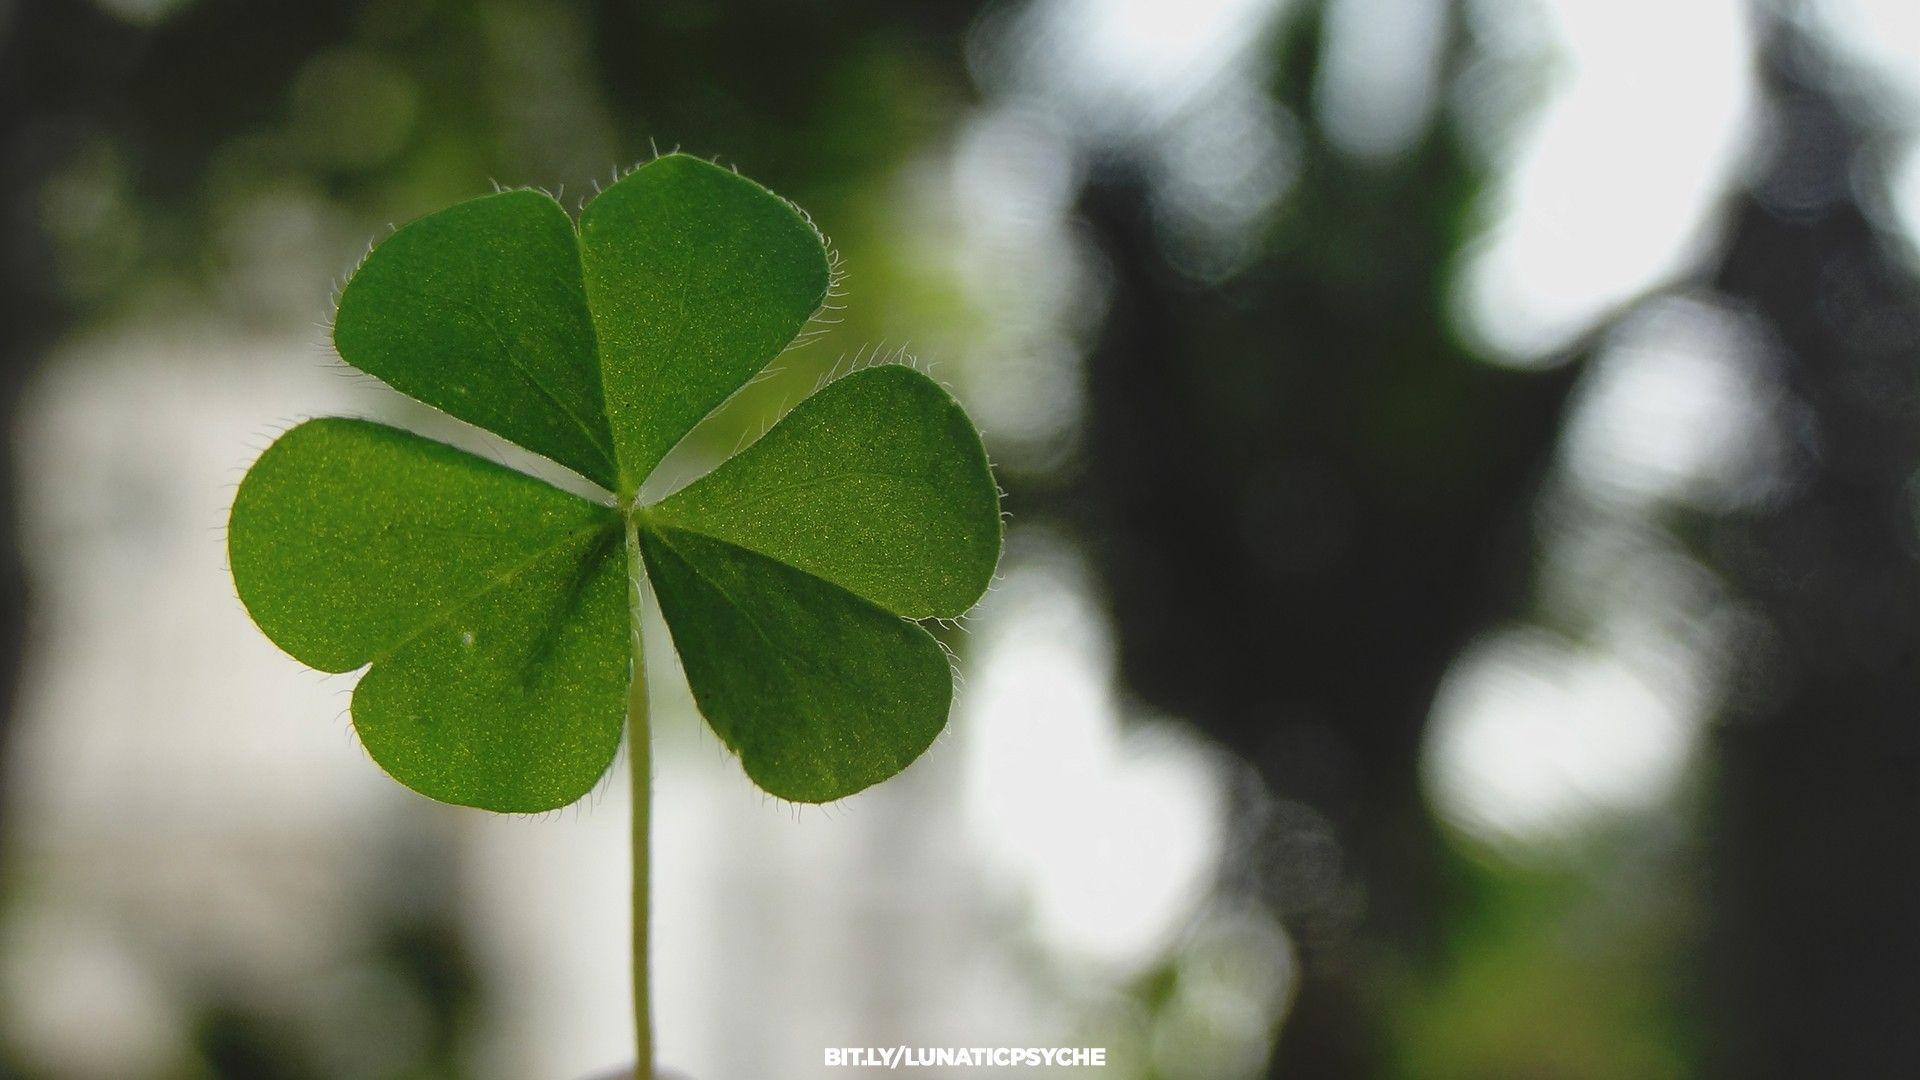 Image For > Four Leaf Clover Desktop Wallpapers